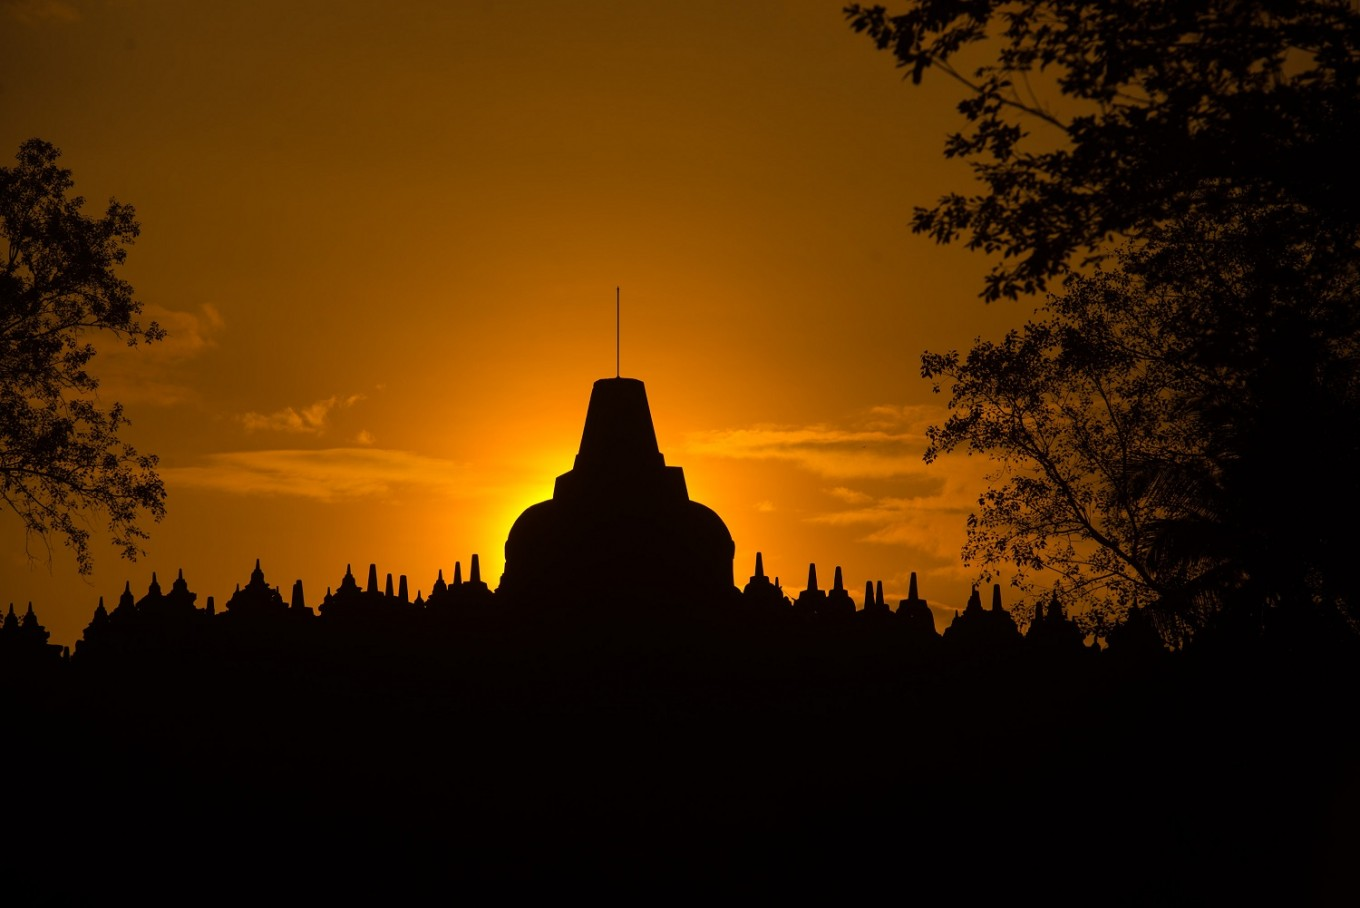 Borobudur Temple in Magelang, Central Java.